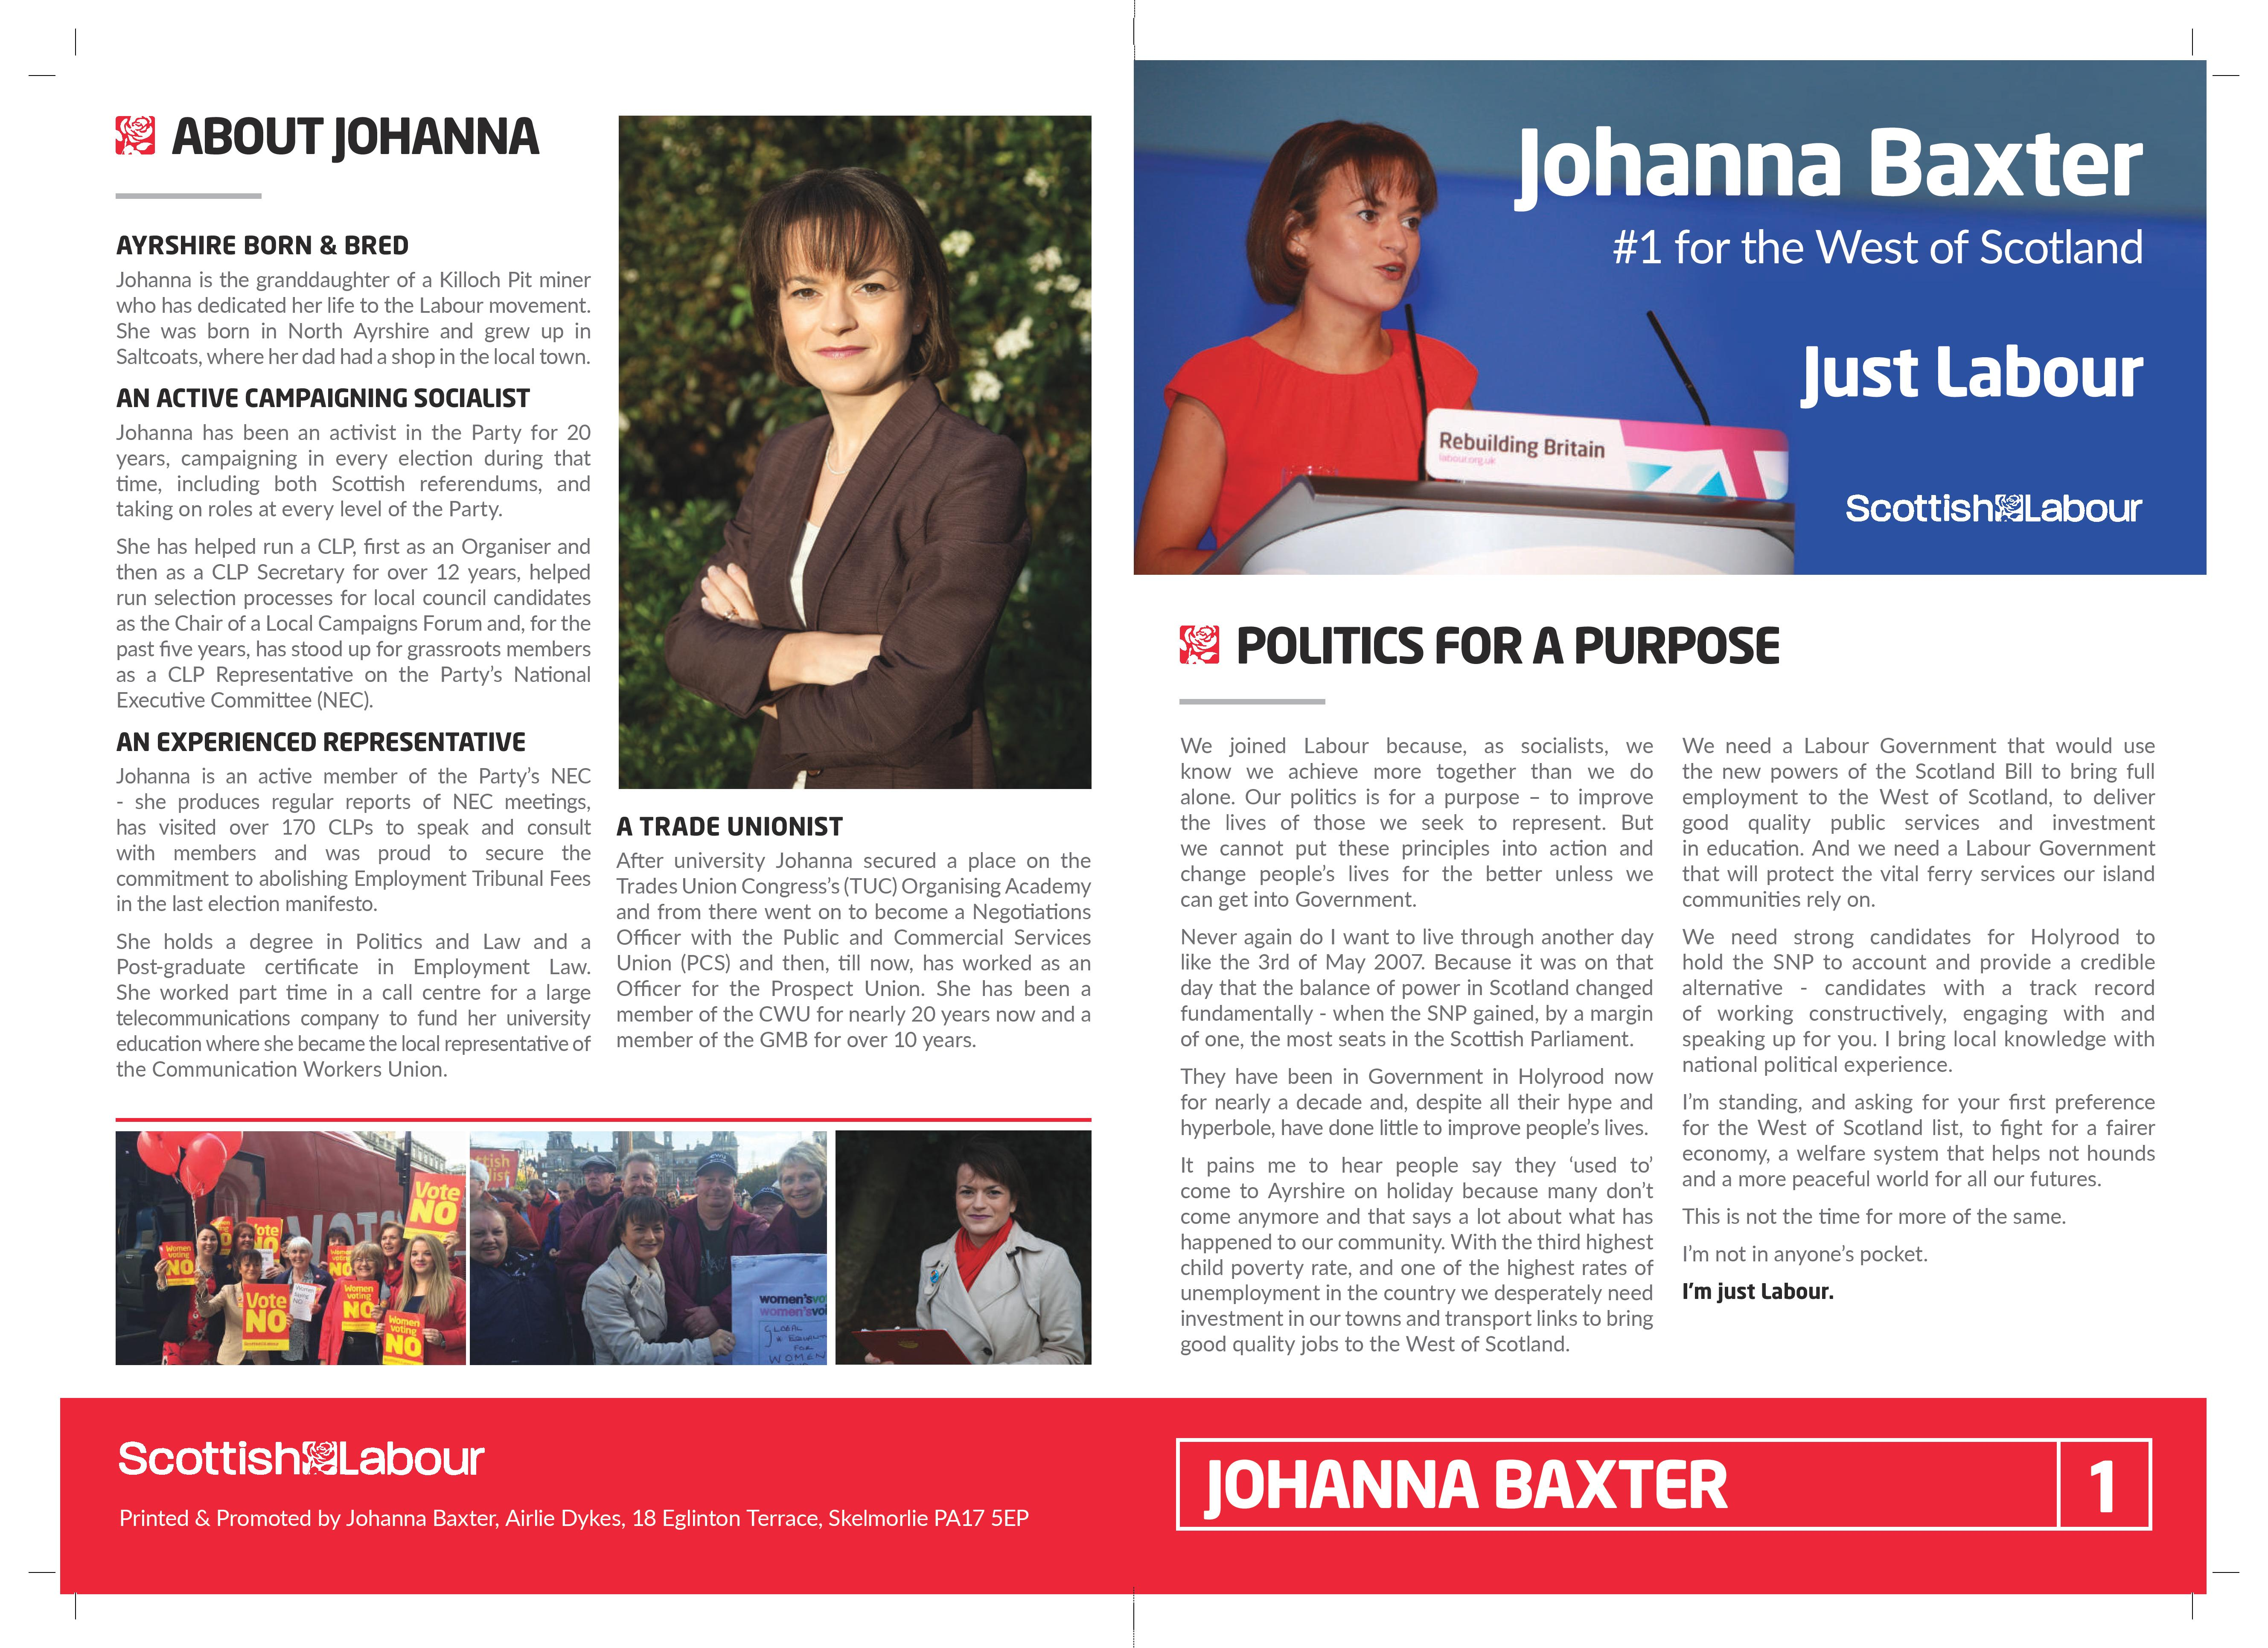 DB0014_-_Johanna_Baxter_-_A4_4pp_Leaflet_-_HIGH_RES_NEW_21.12.15.compressed-page-001_(1).jpg